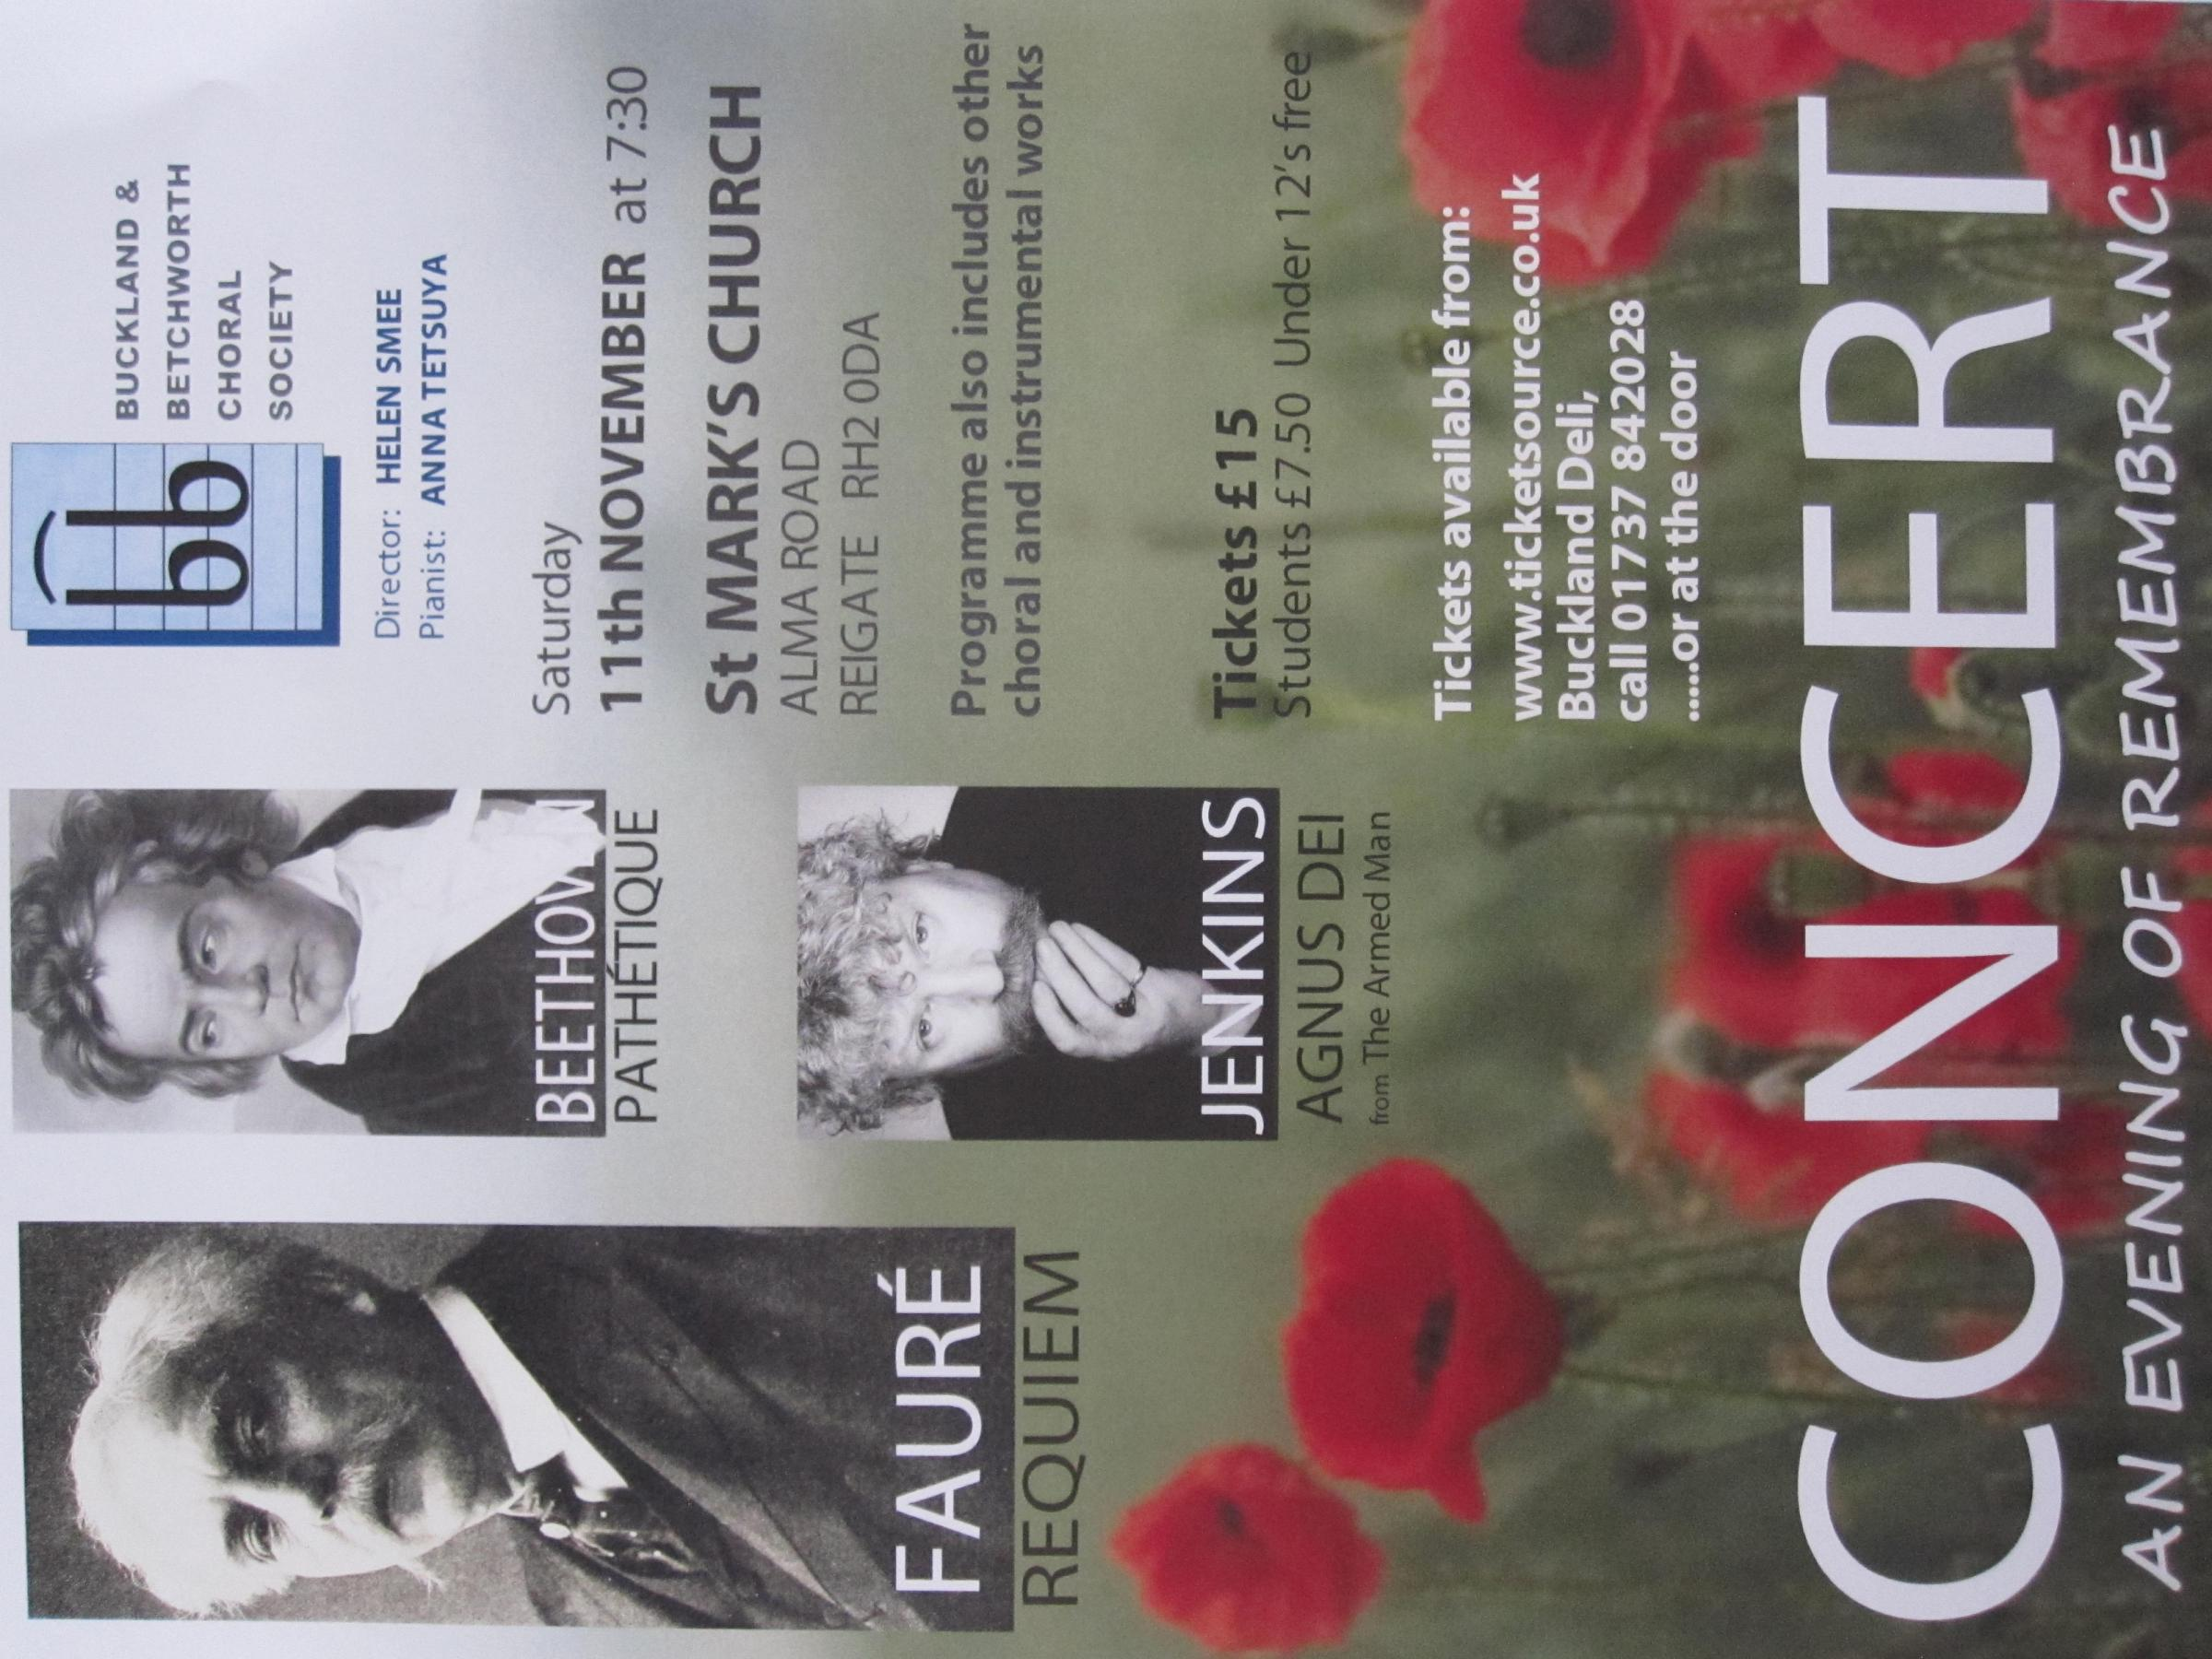 Concert - An Evening of Remebrance